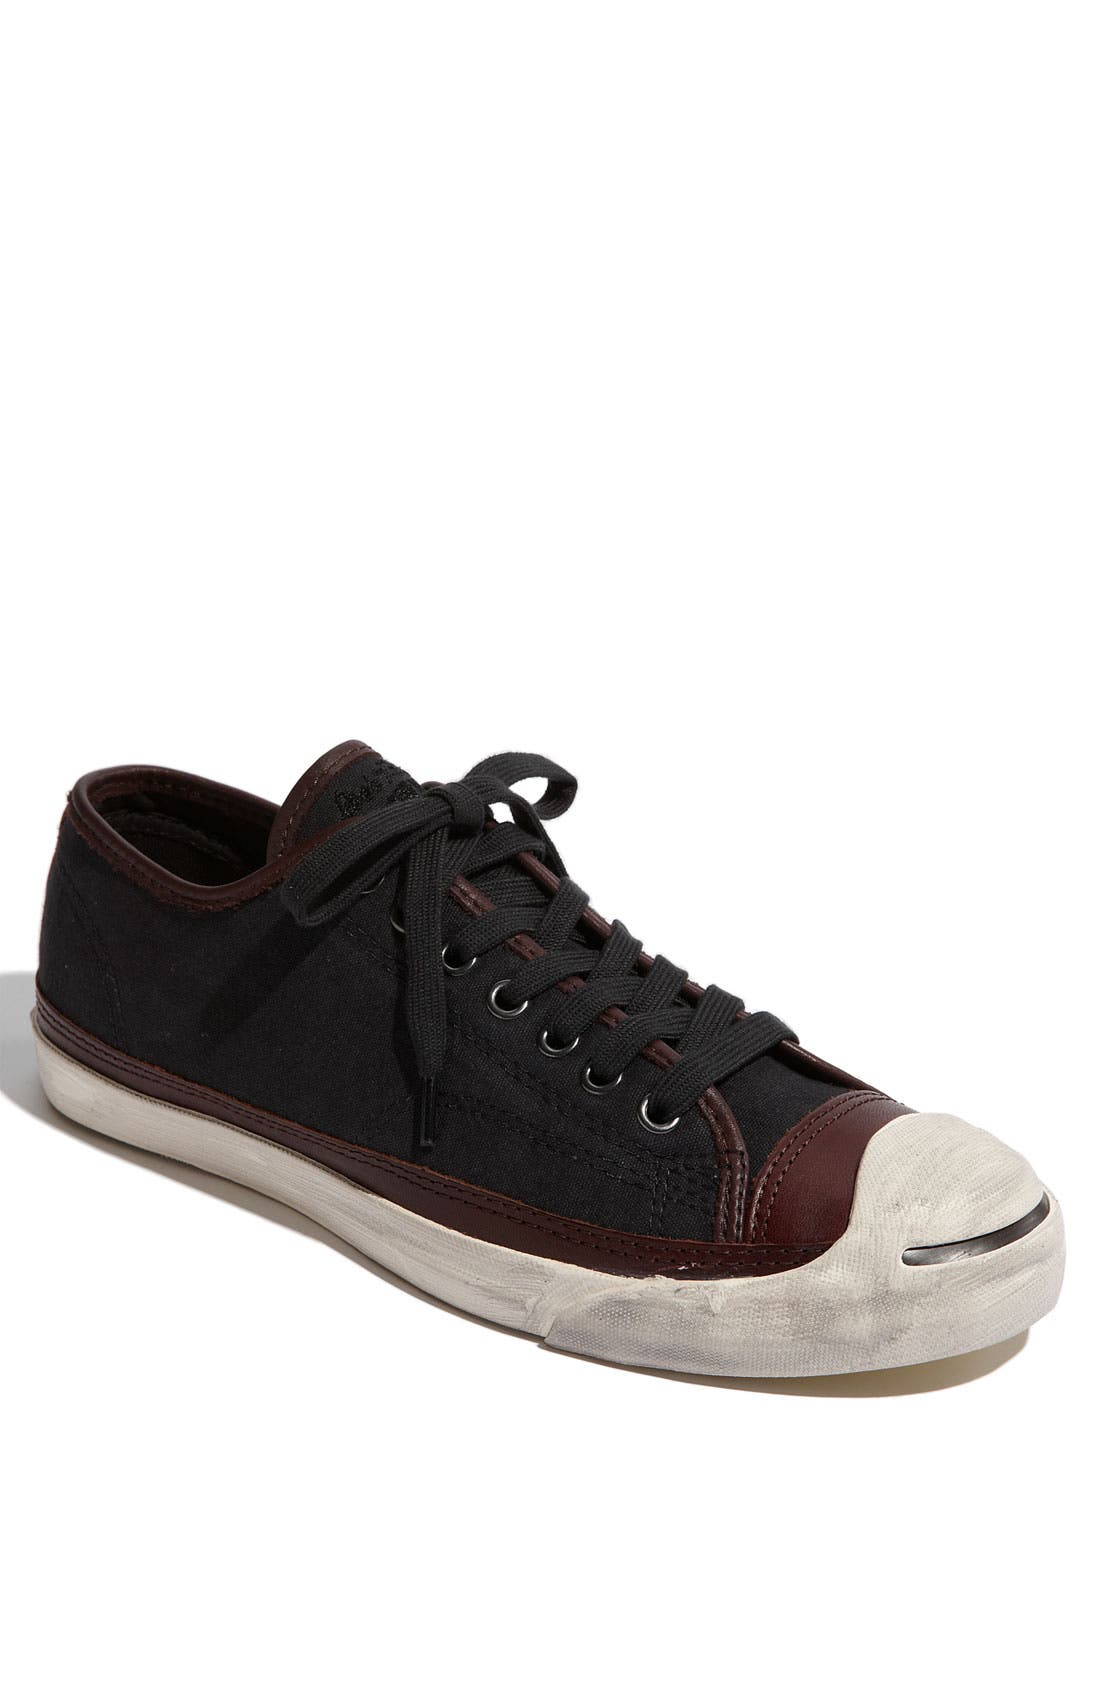 Main Image - Converse by John Varvatos 'Jack Purcell Vintage' Sneaker (Men)